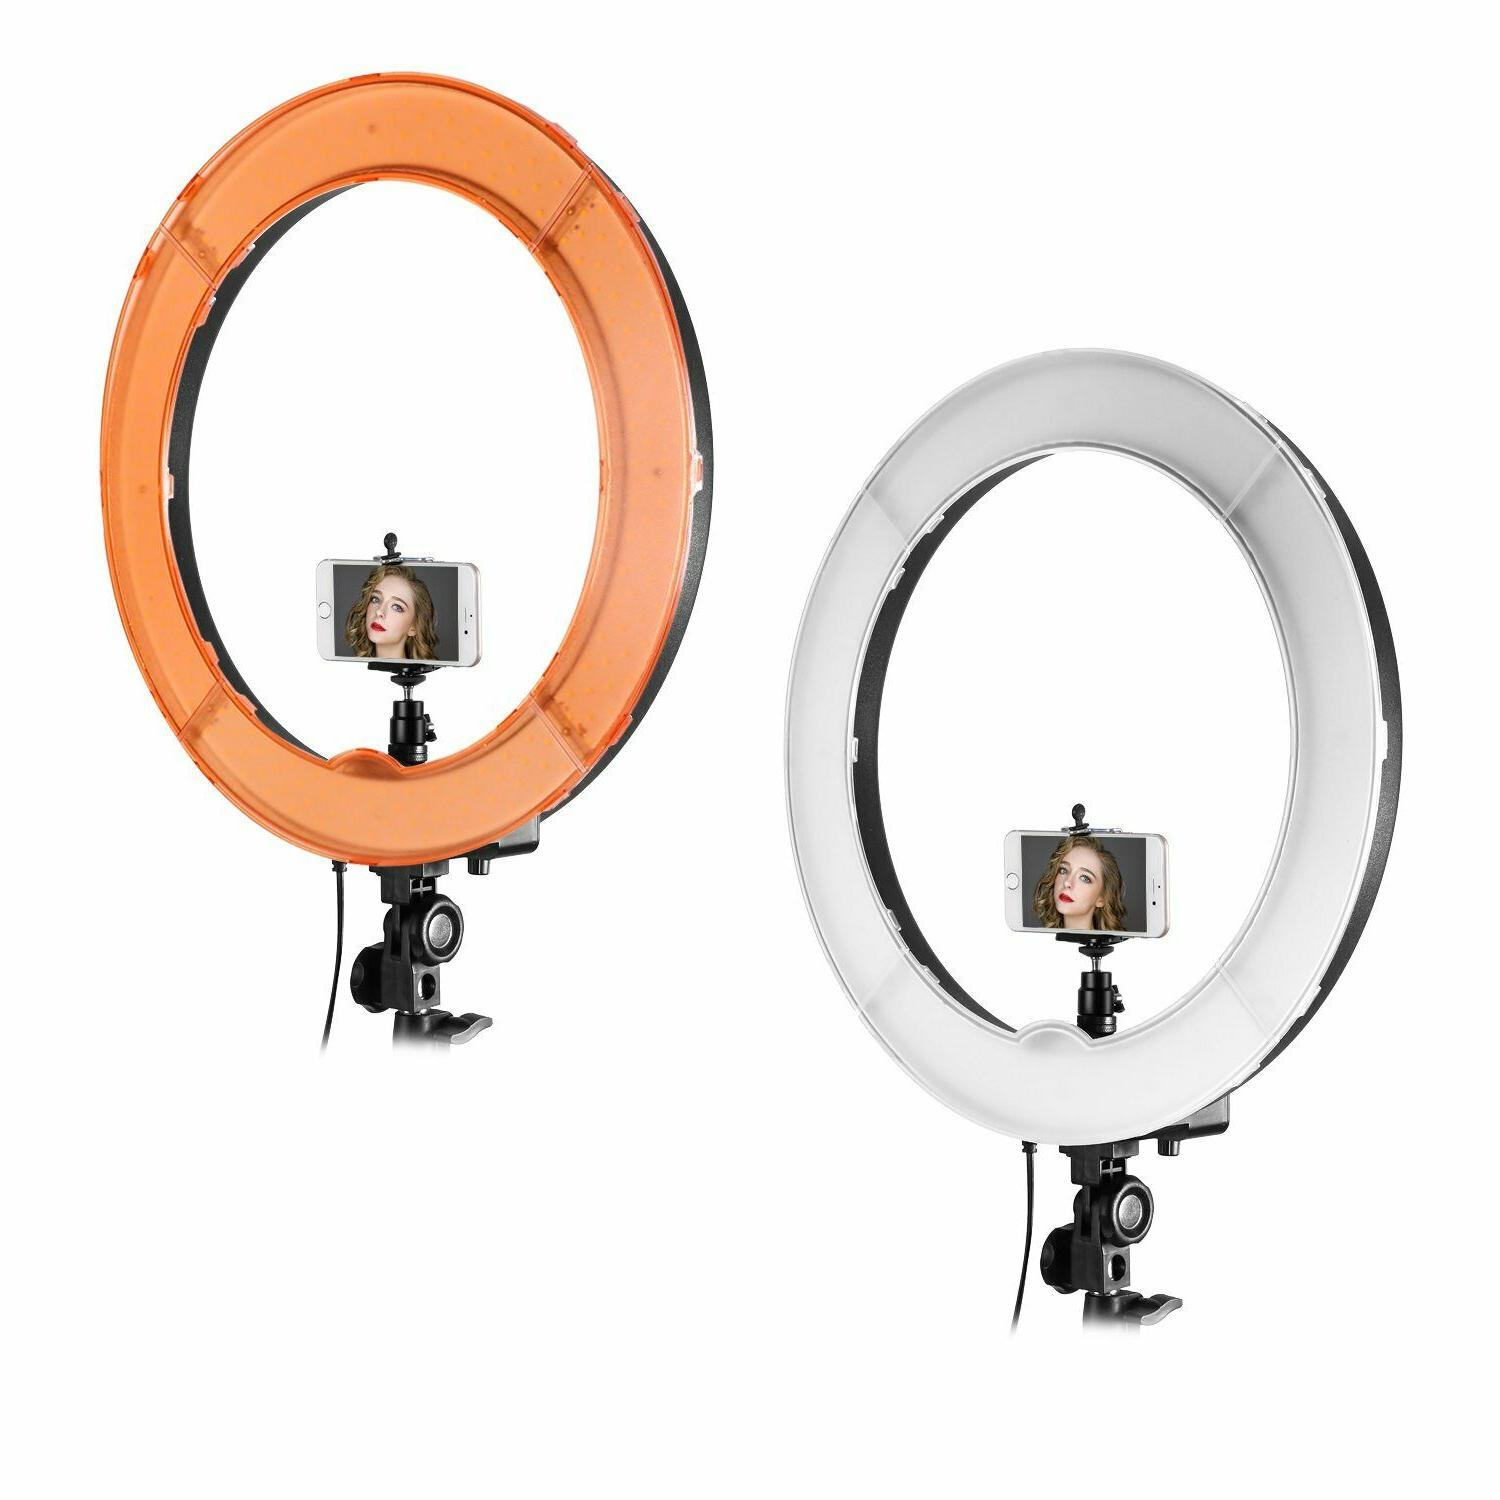 Neewer Dimmable 240 SMD Ring Light